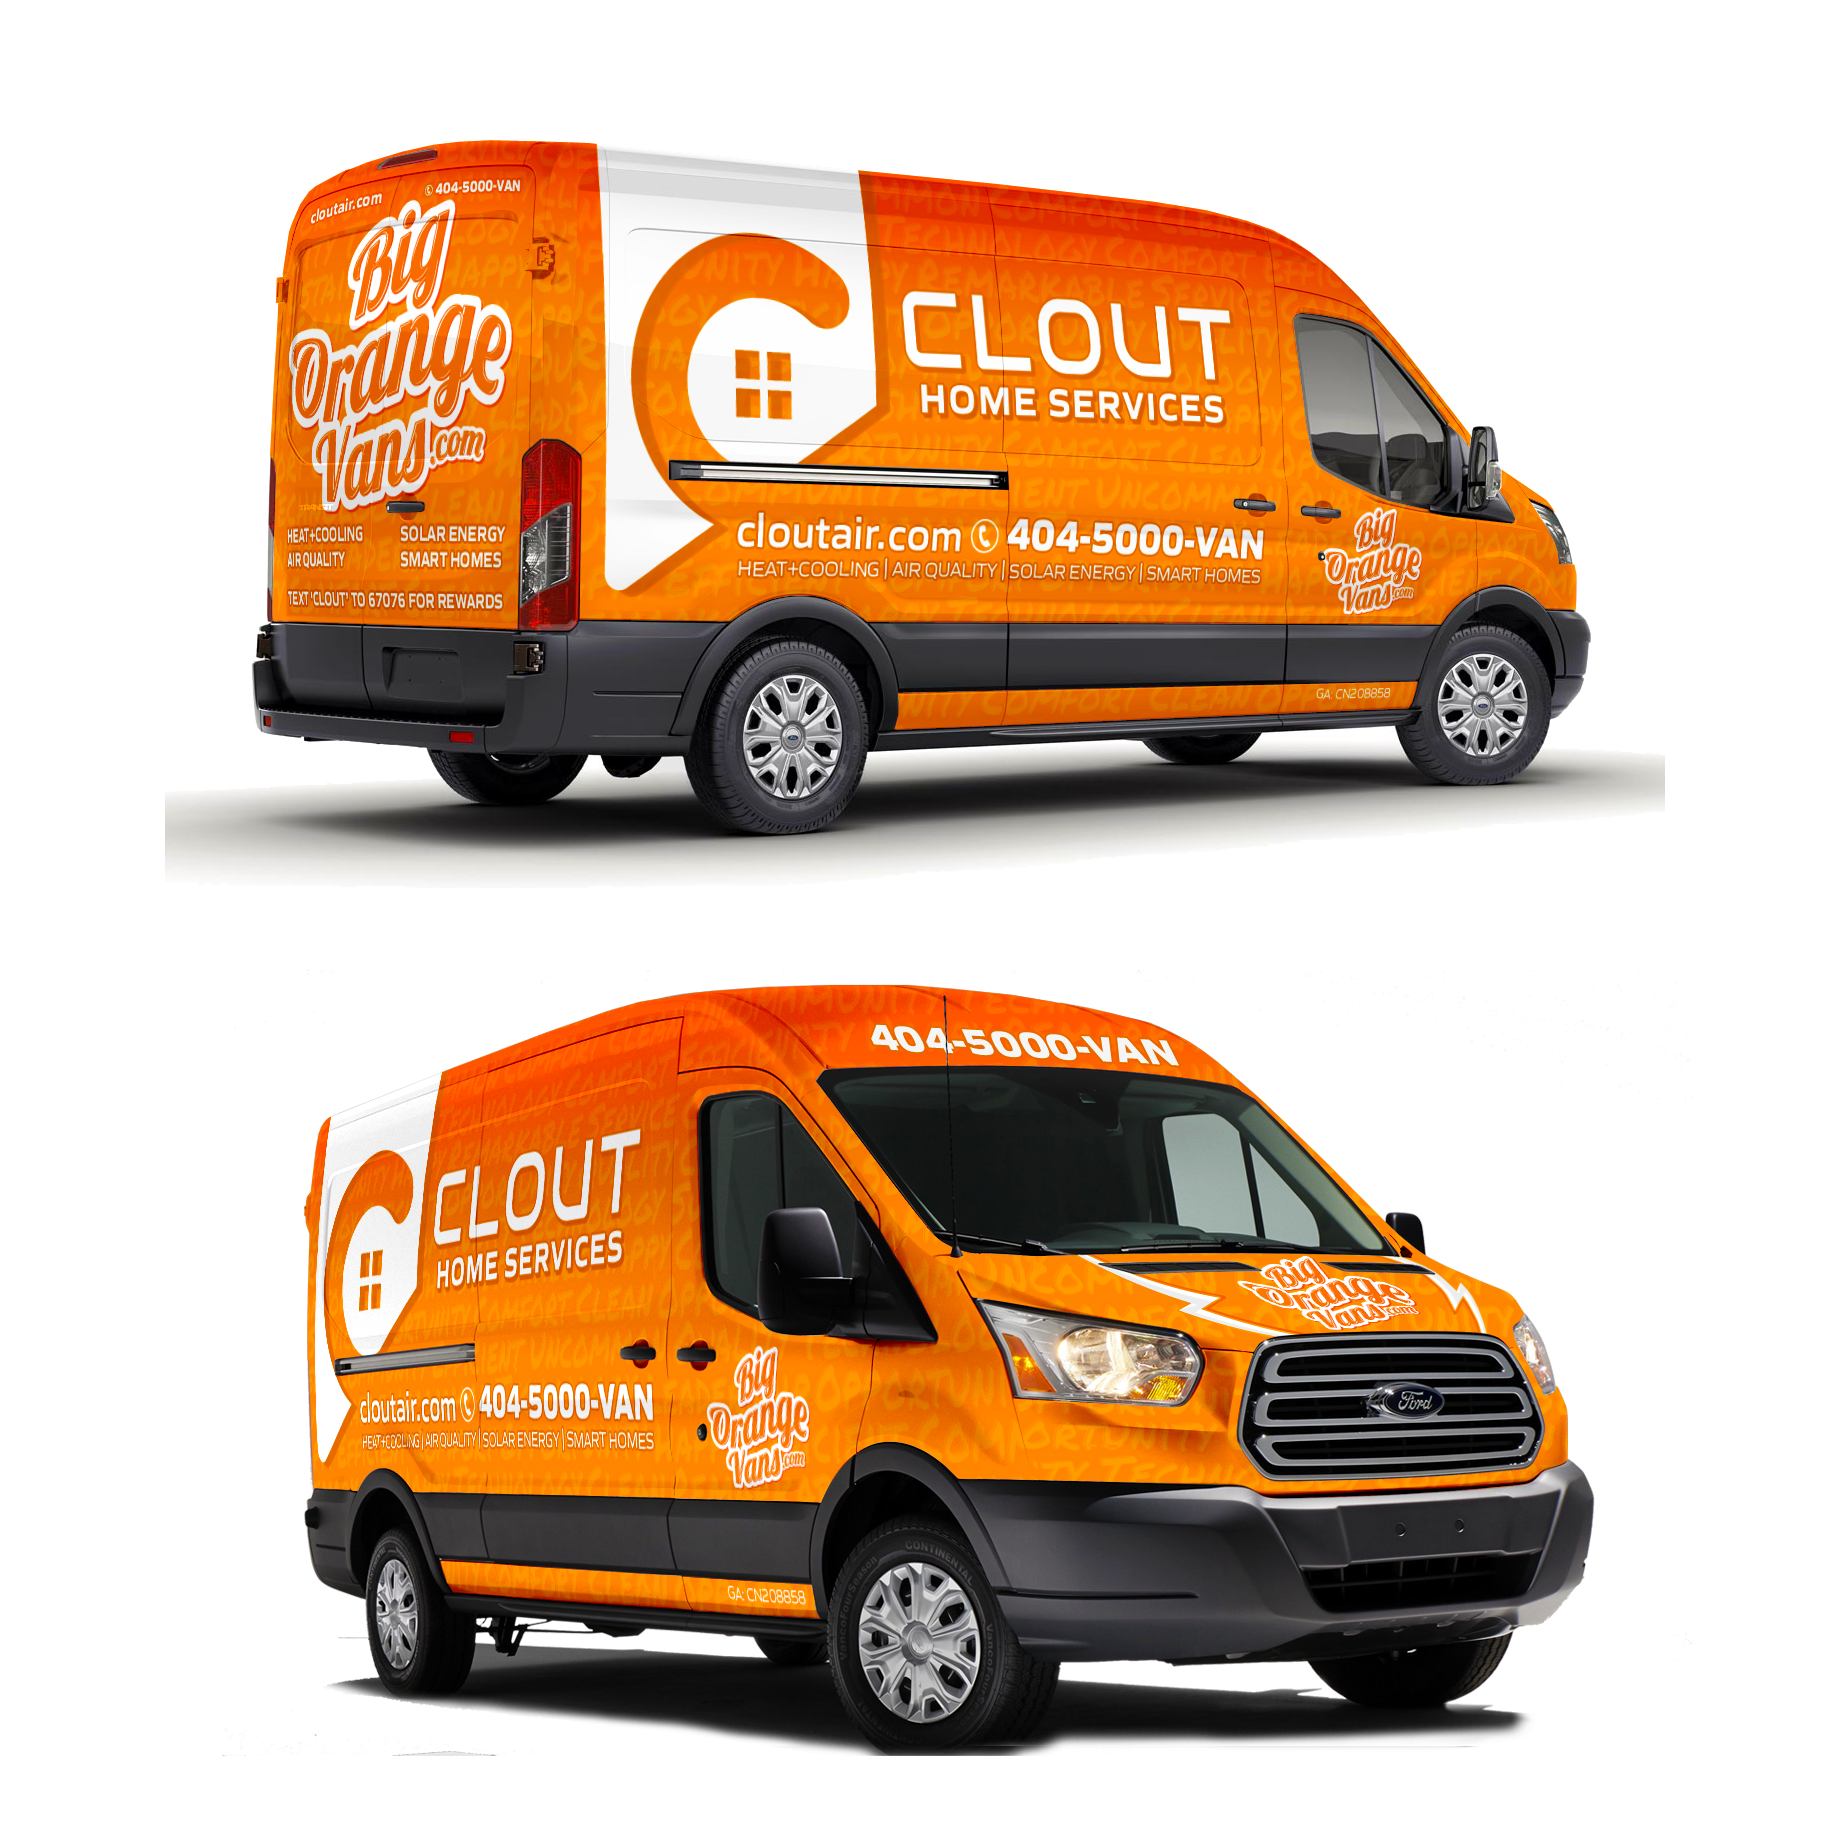 Design an ICONIC Van Wrap for Home Services Start-up